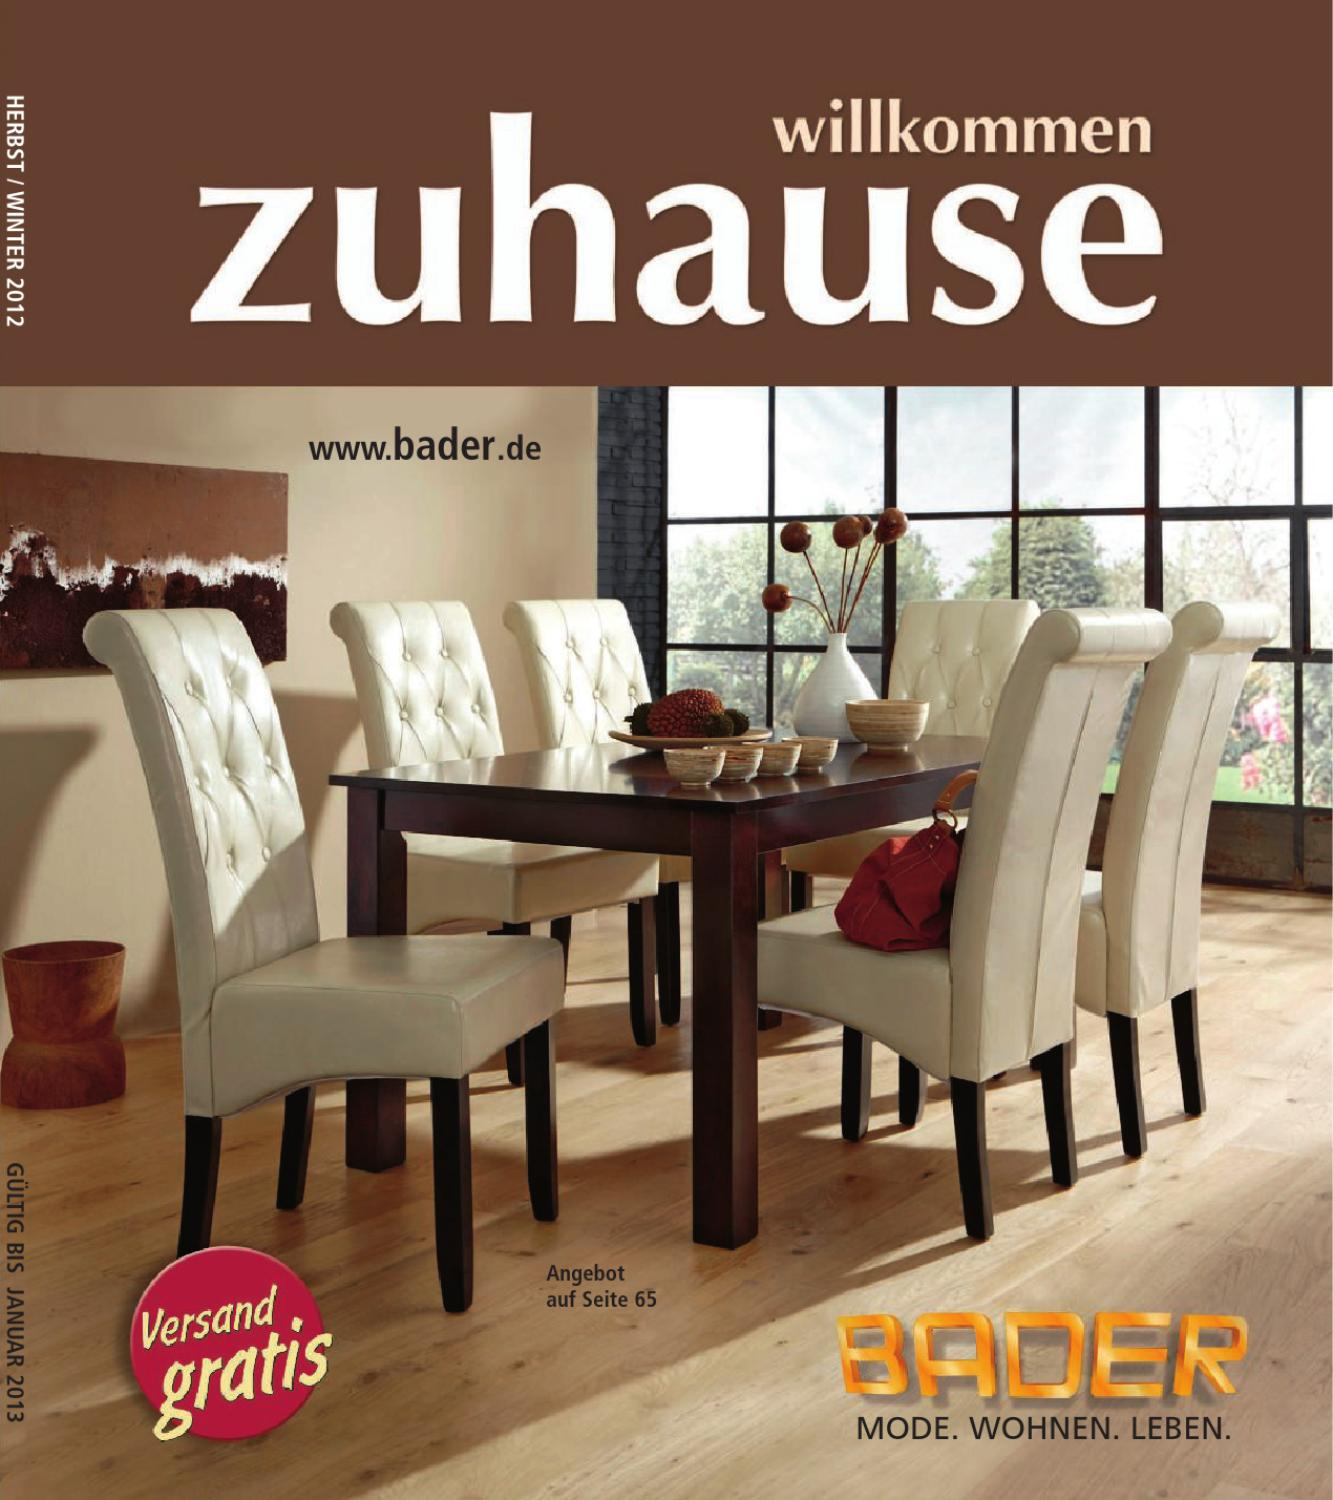 Bader zuhause by 1001katalog - issuu